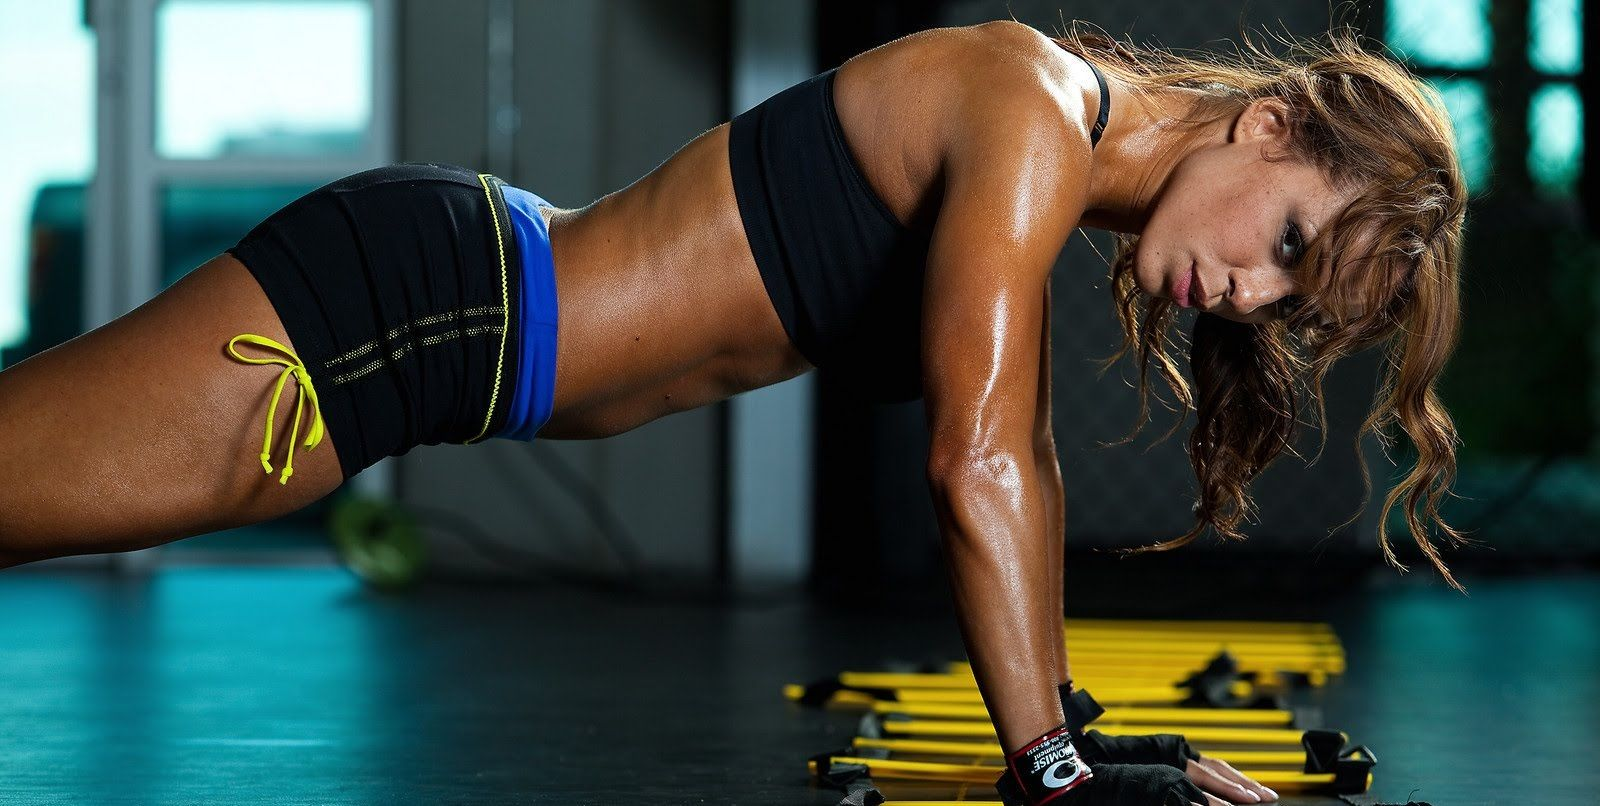 The 15 Hottest Women At The Crossfit Games